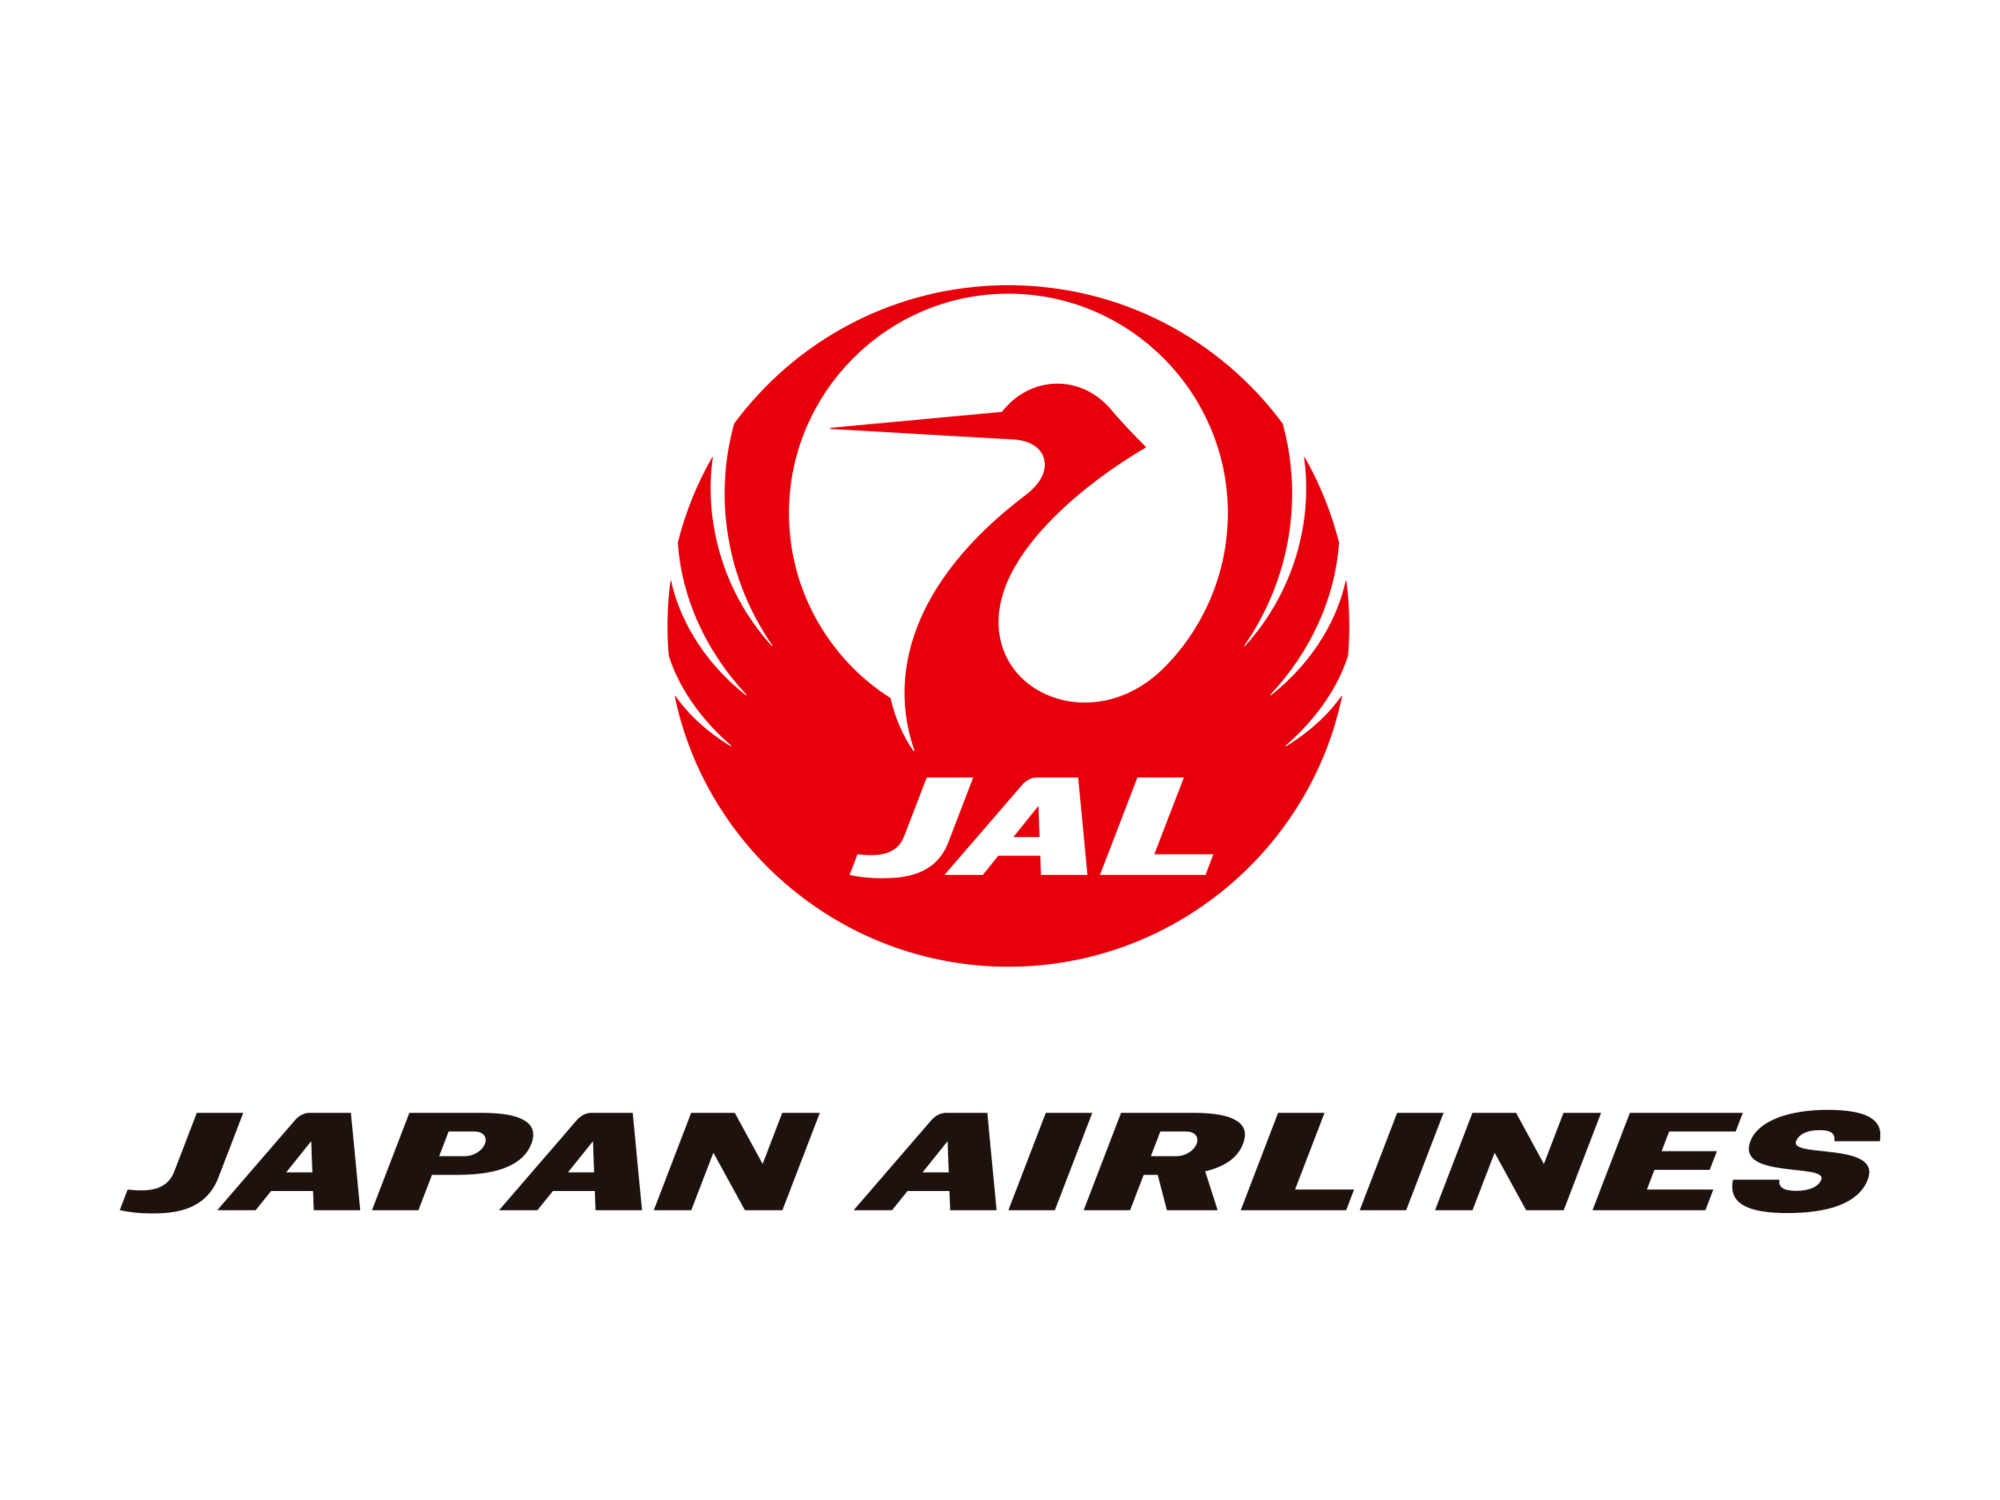 Japan Airlines のロゴ